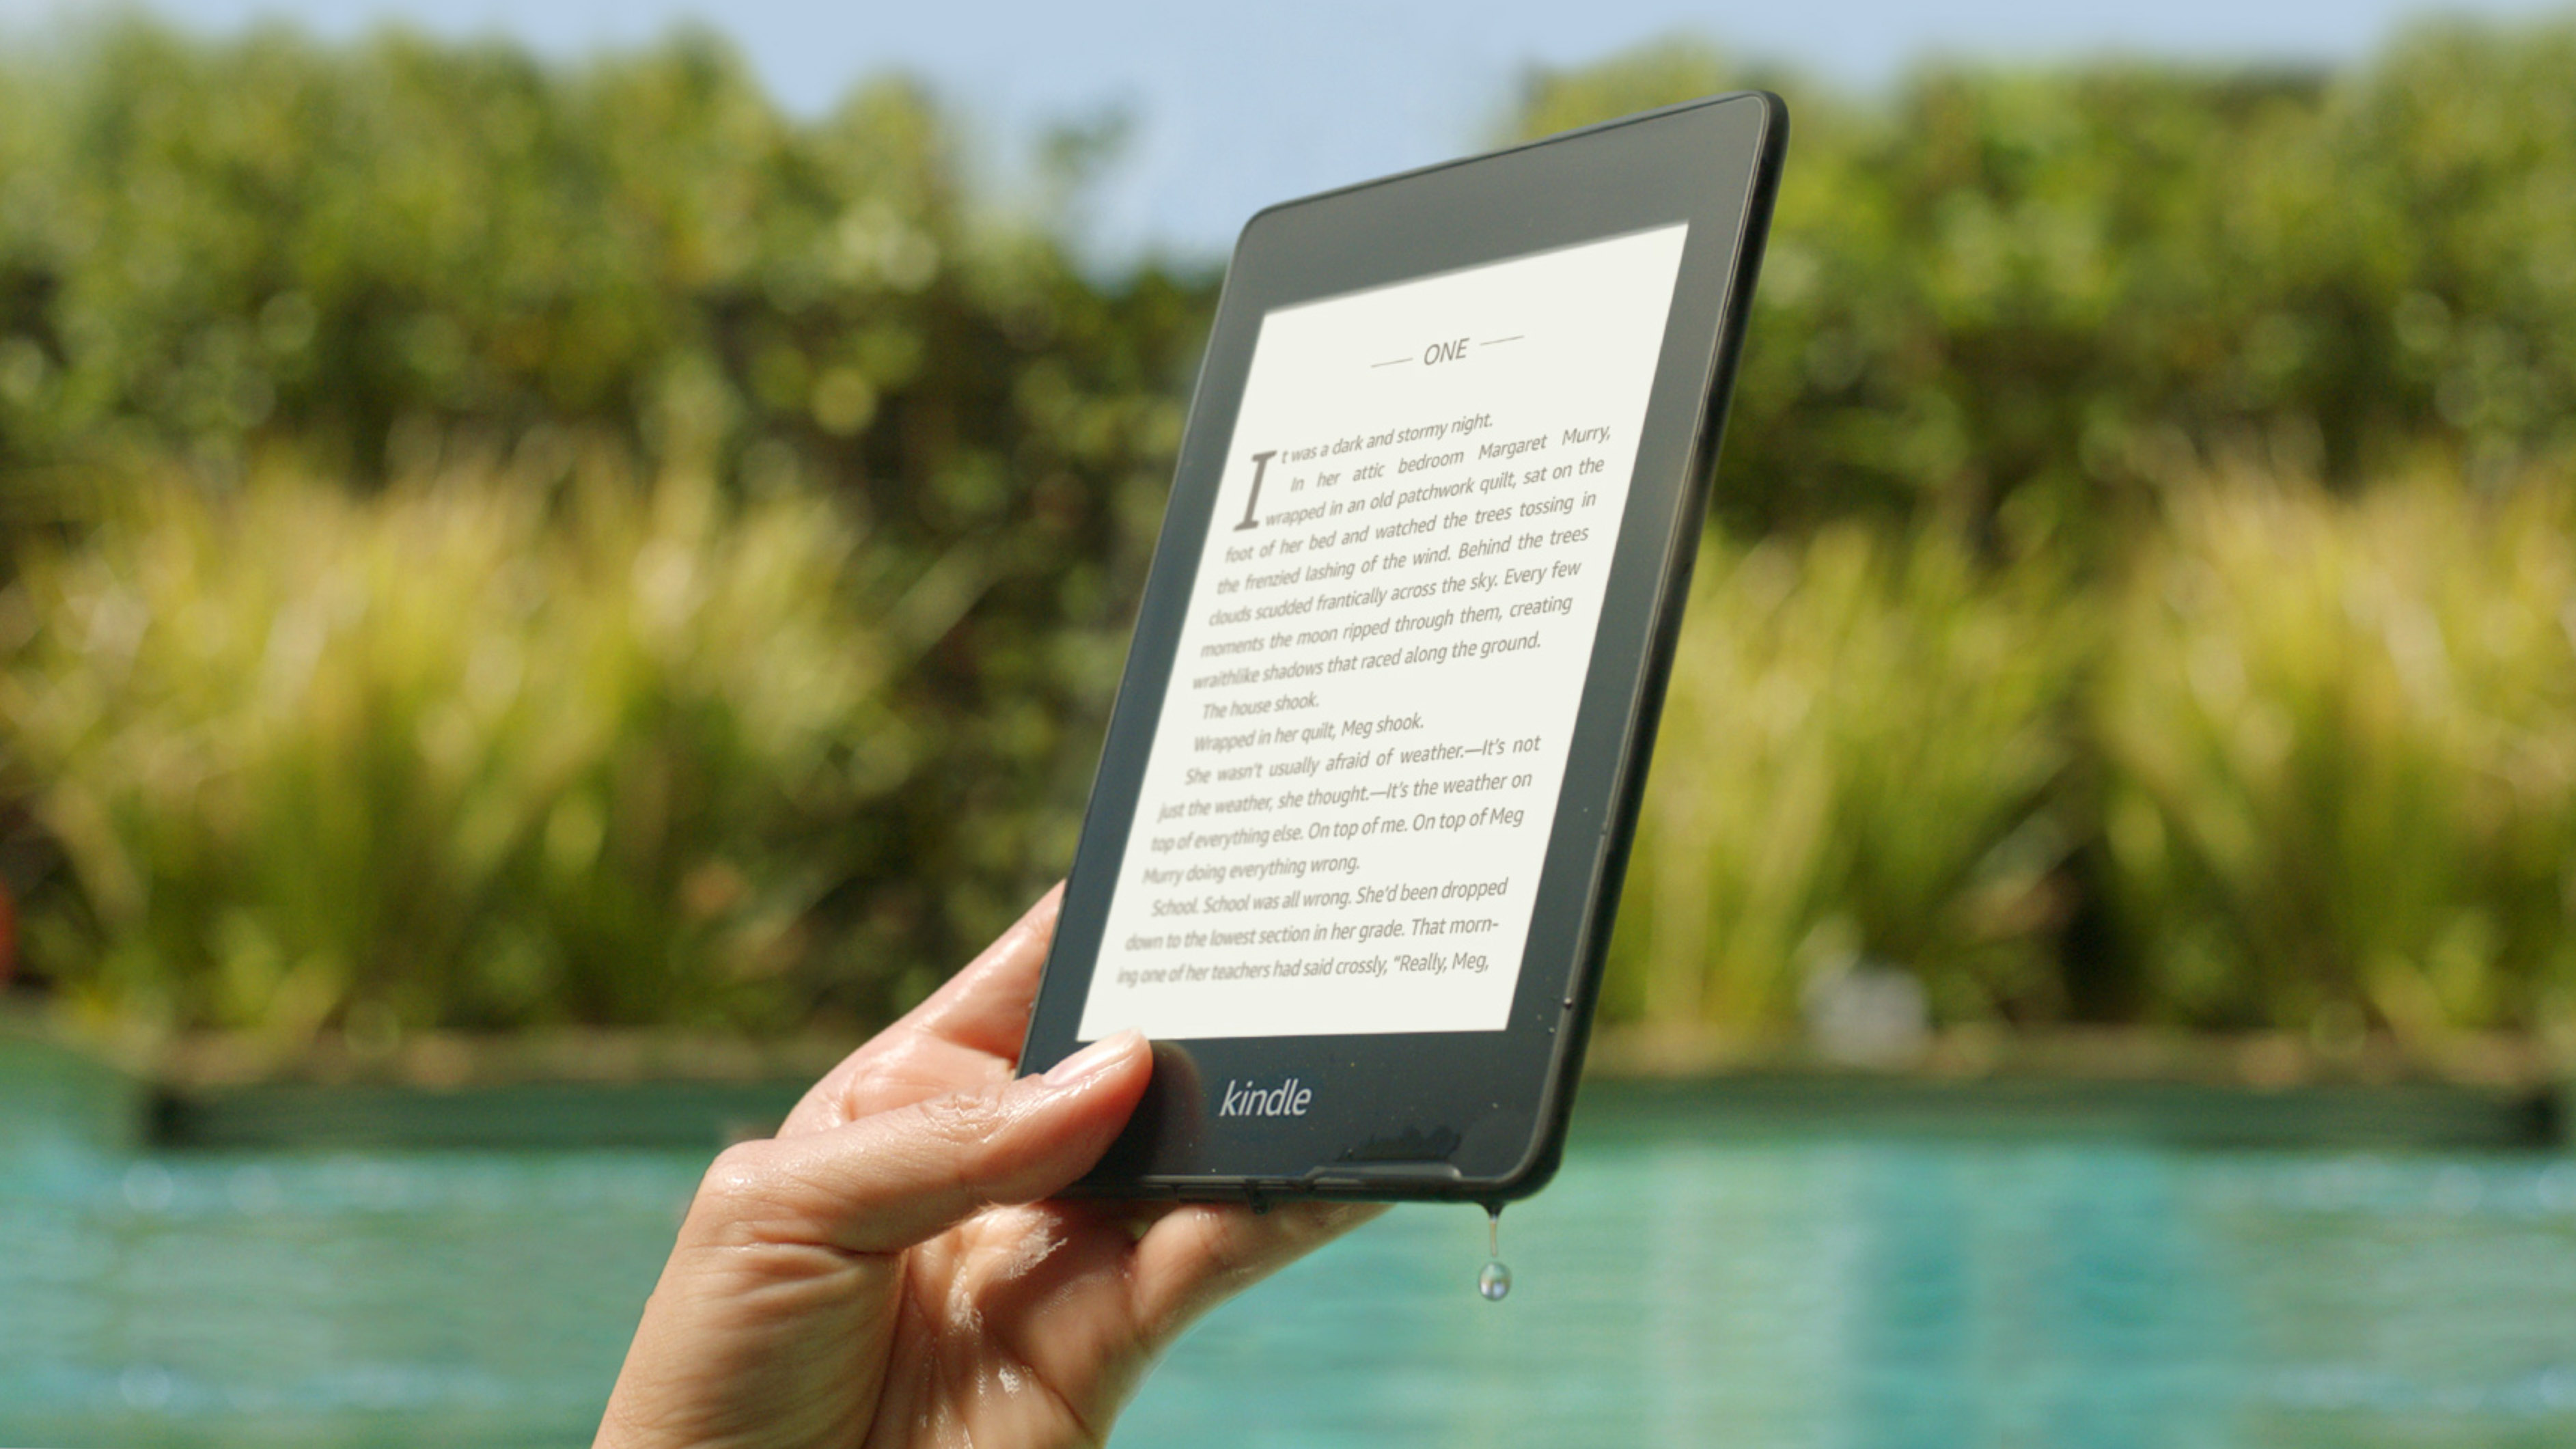 Get an Amazon Kindle for $65 ($25 off), or a Kindle Paperwhite for $90 ($40 off)